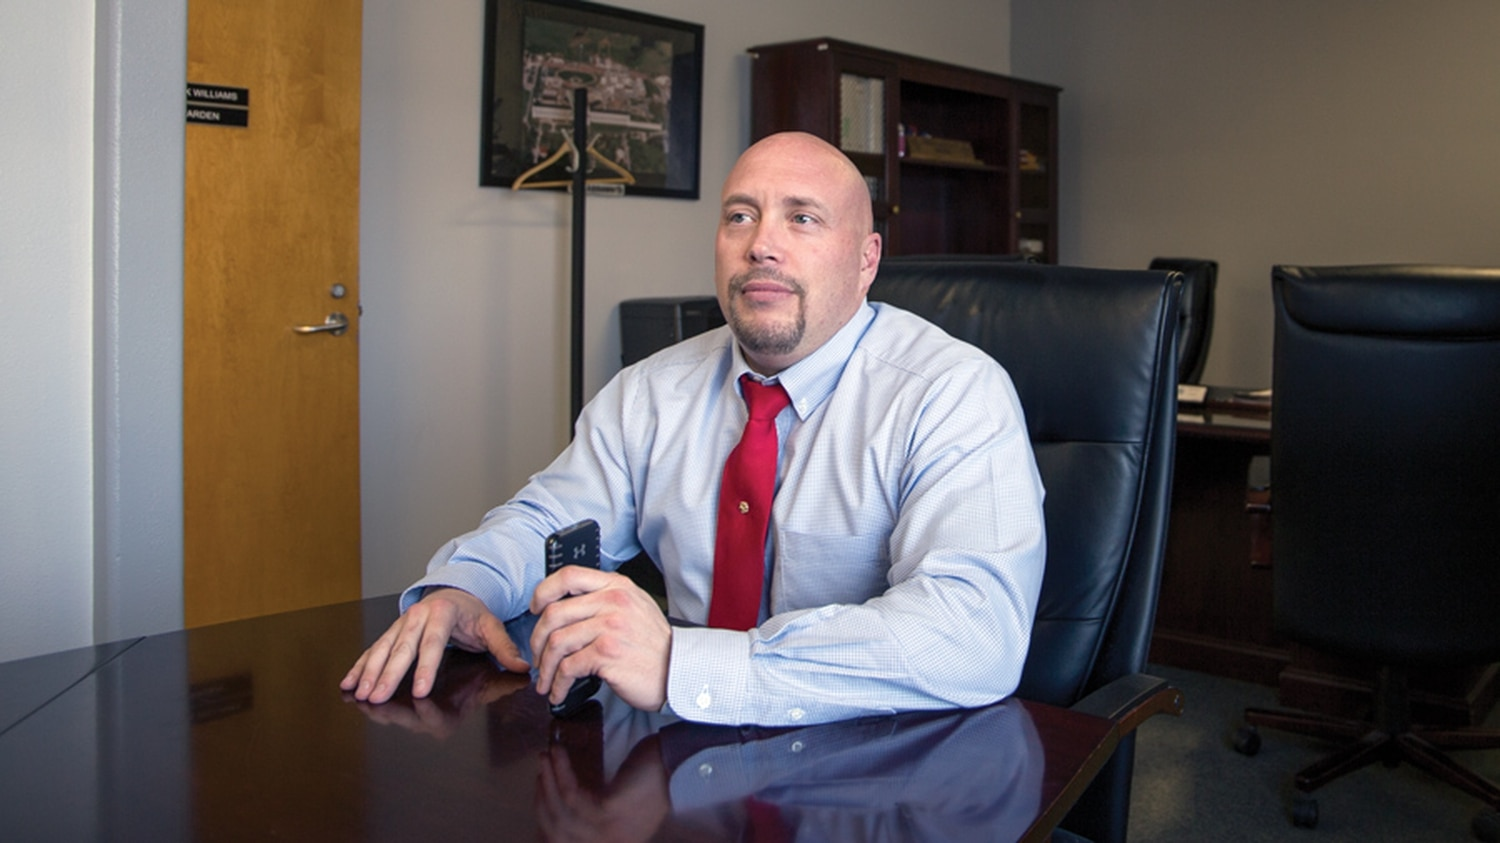 Derek Williams, warden at the Santa Fe County jail, says a lack of resources led him to shut down the housing unit for for inmates transitioning from solitary units to general population.